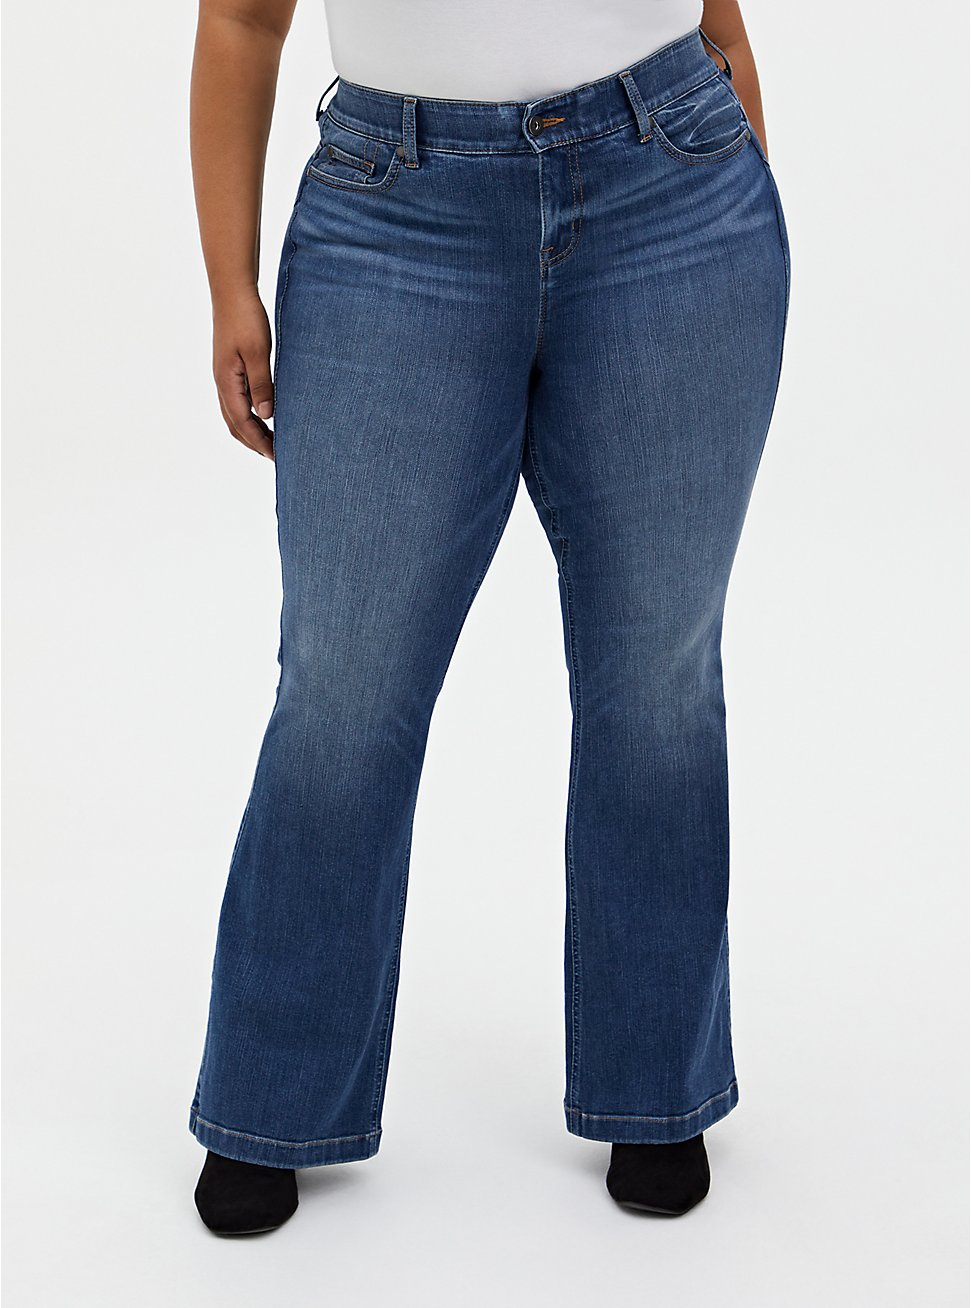 Bombshell Flare Jean - Premium Stretch Eco Medium Wash, WESTCHESTER, hi-res